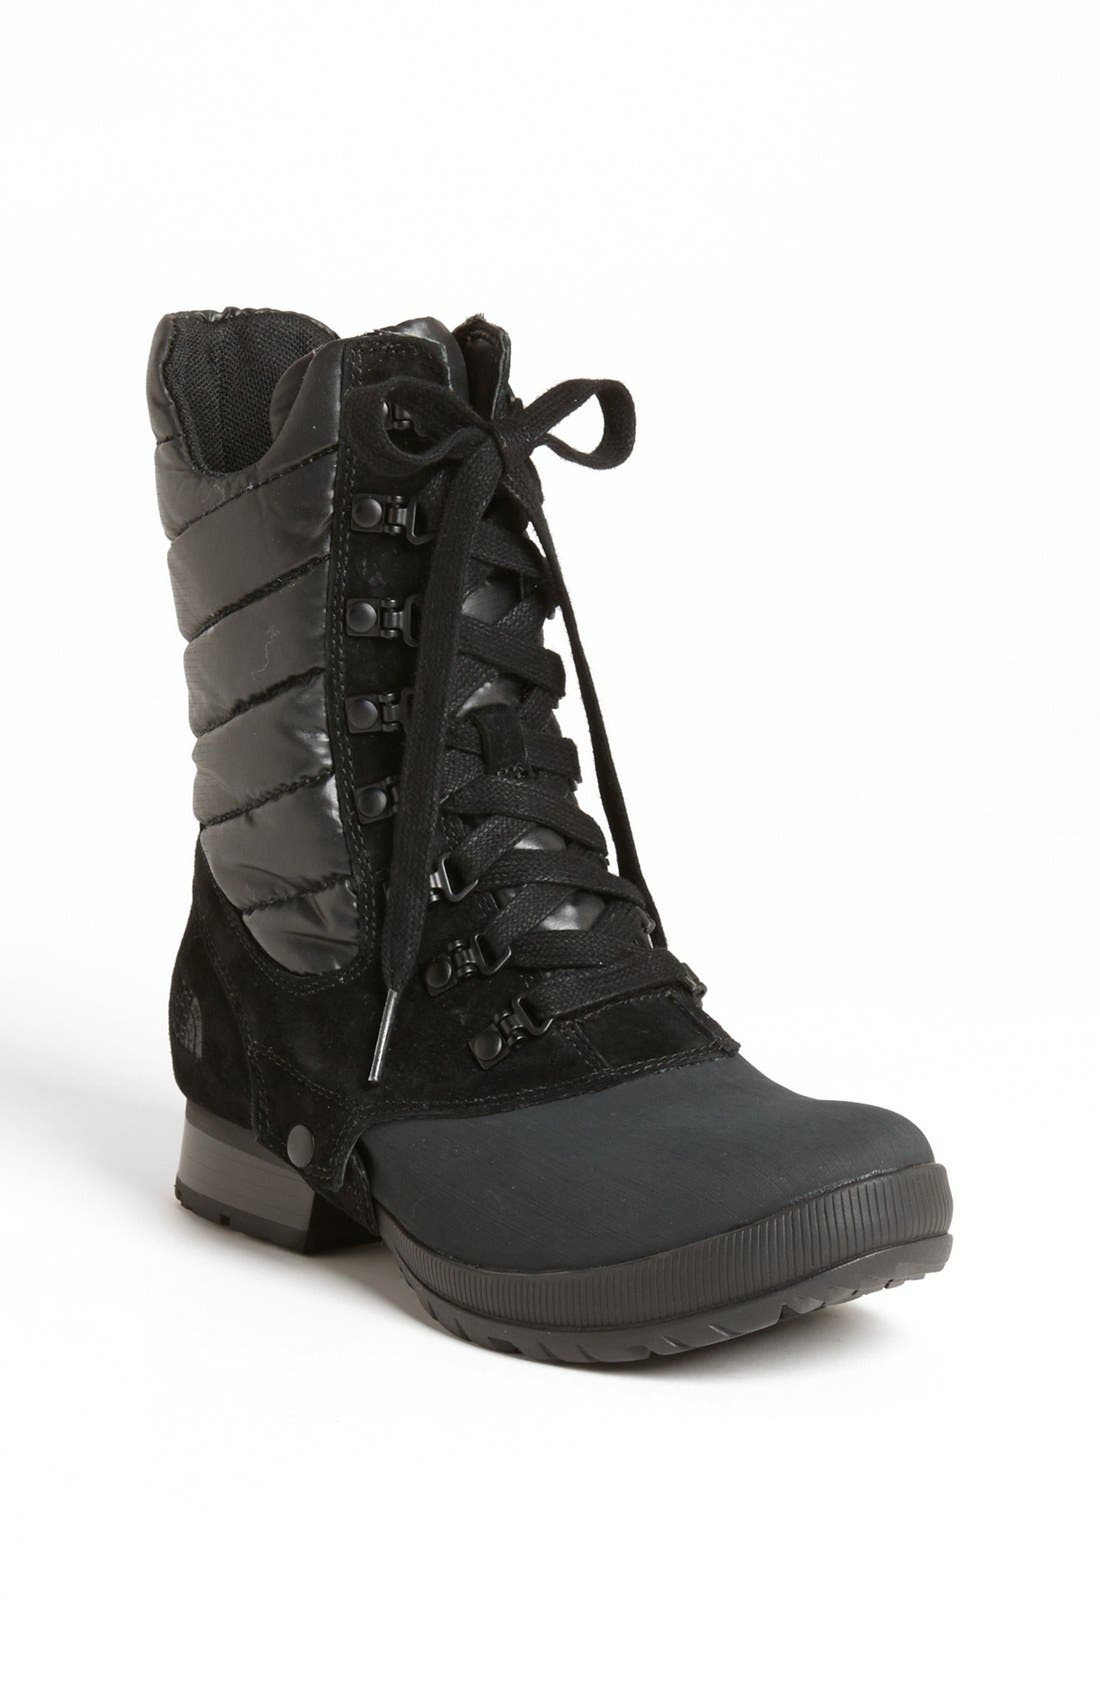 Alternate Image 1 Selected - The North Face 'Zophia' Boot